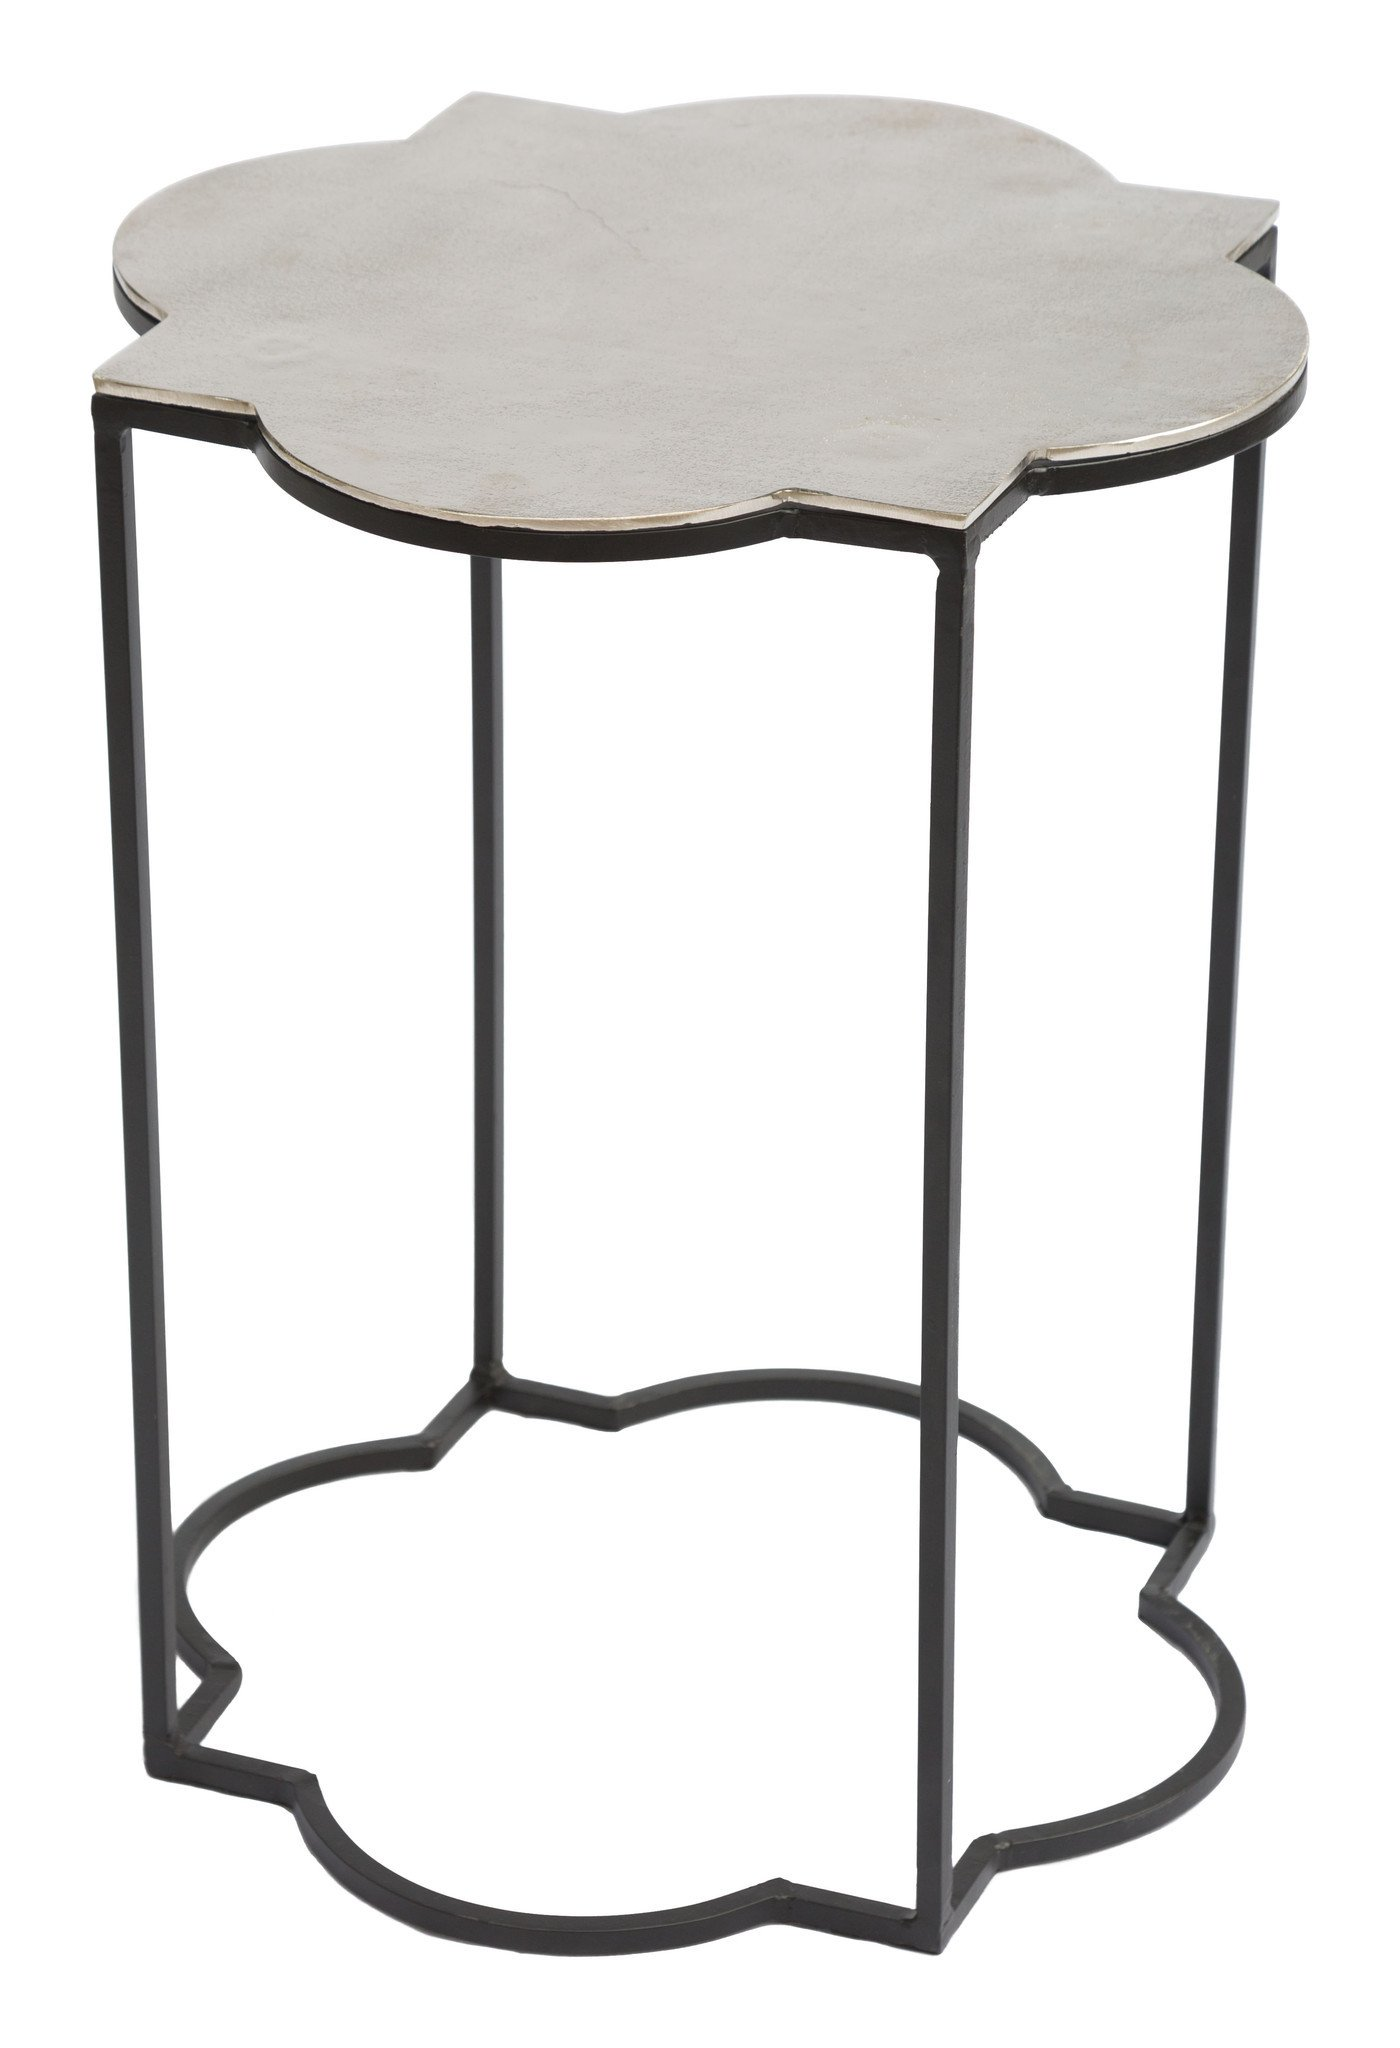 modern contemporary rustic vintage side end tables alan decor brighton accent table set black white leona furniture with drawers tablecloth round drum coffee desktop fridge dining